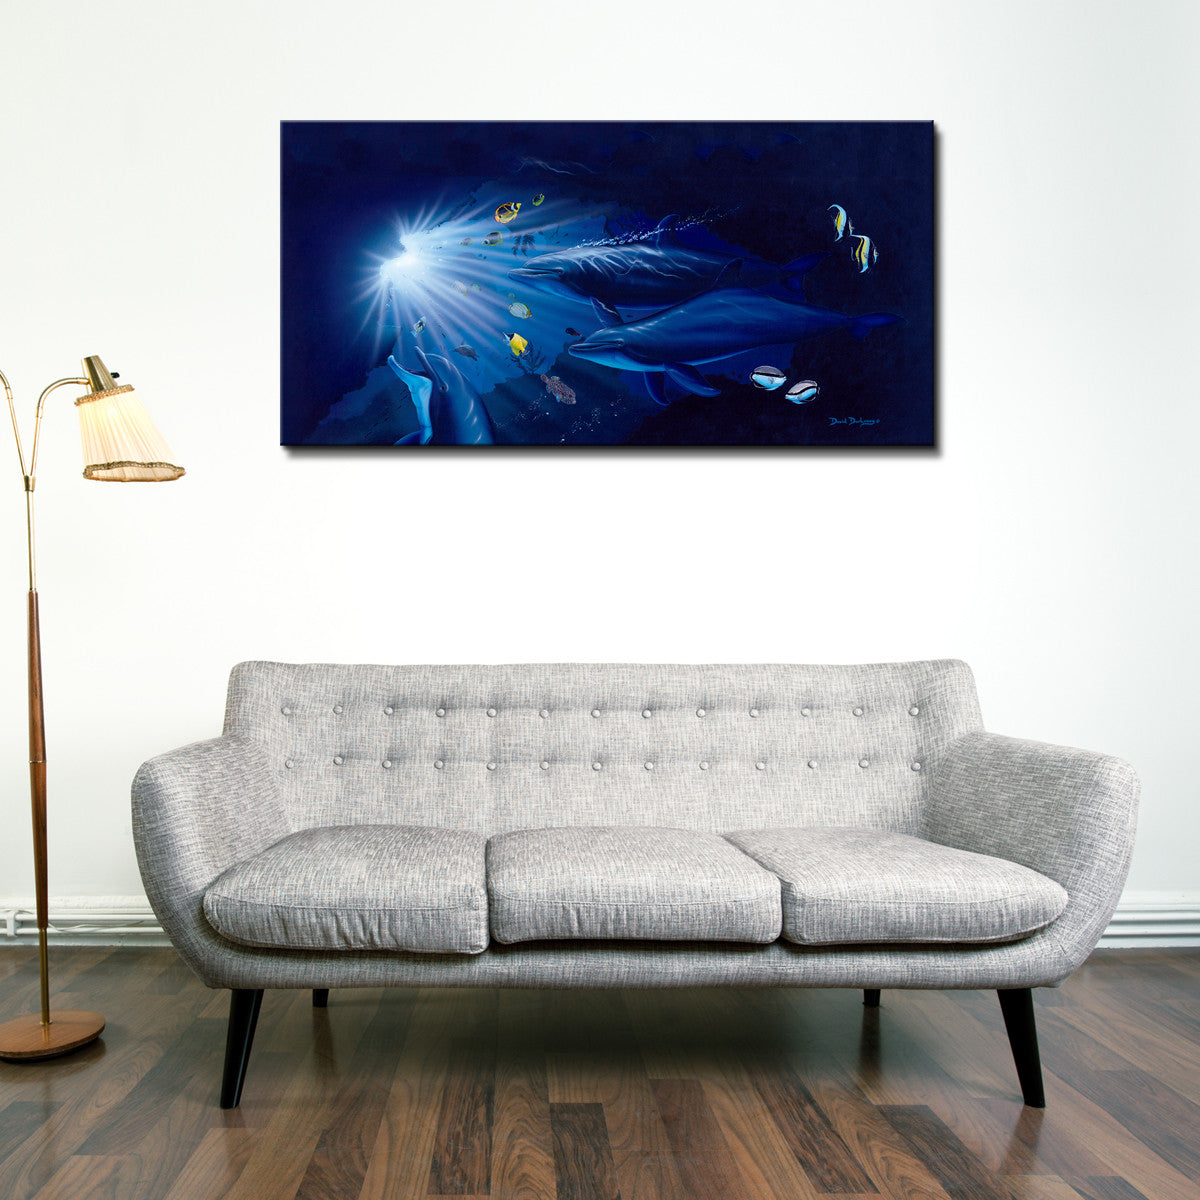 David Dunleavy 'Diving the Cathedrals' Canvas Wall Art